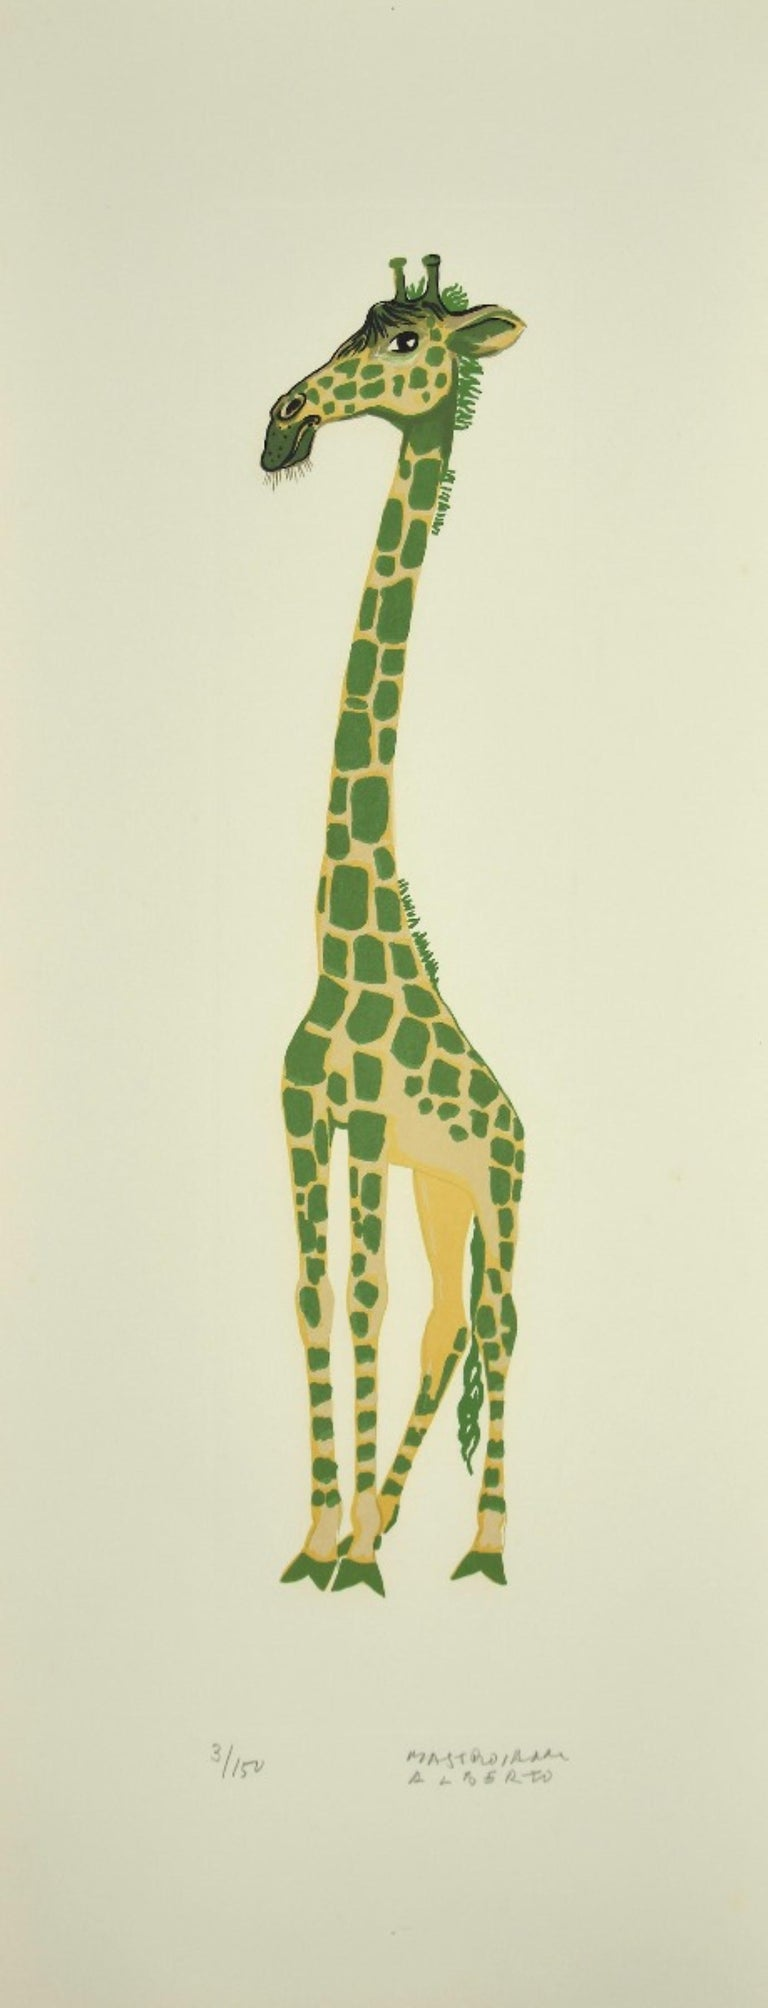 Girafe is an original lithograph realized by Alberto Mastroianni in the 1970s.  Hand Signed on the lower right margin.  Numbered on the lower in pencil. Edition 3/150.  Good conditions, except for some folding along the margins.  The artwork